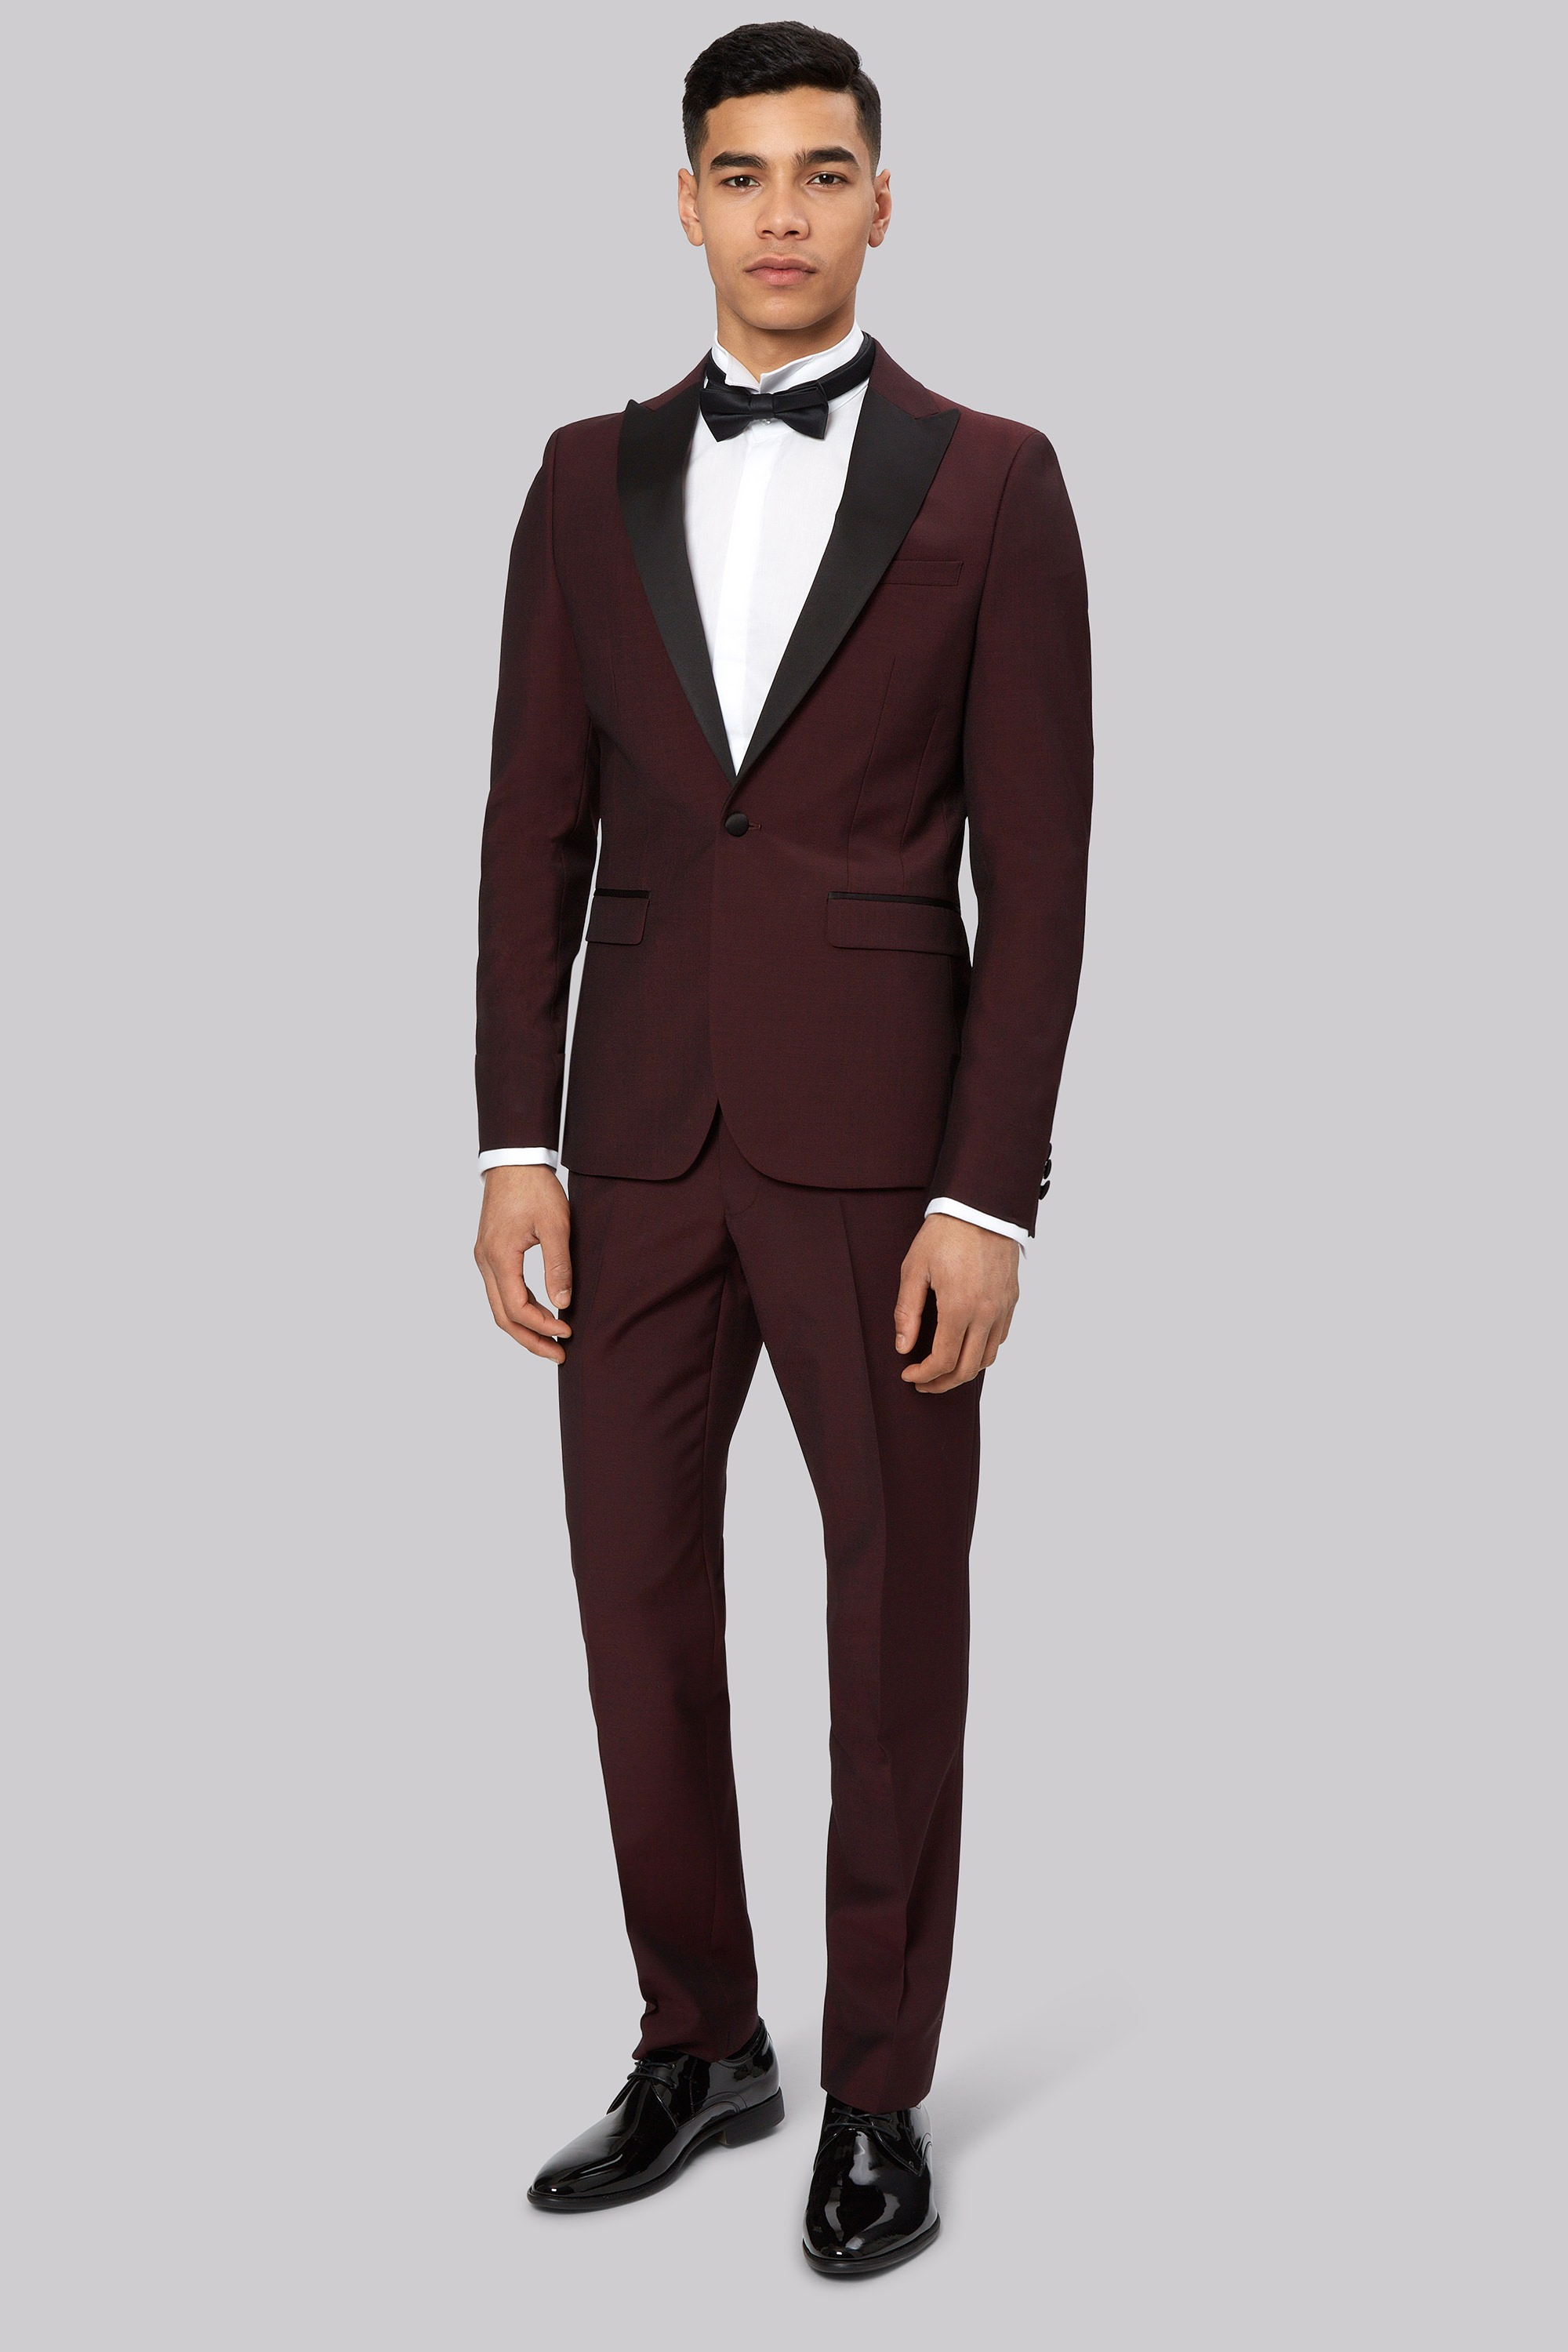 London Skinny Fit Claret Dress Suit